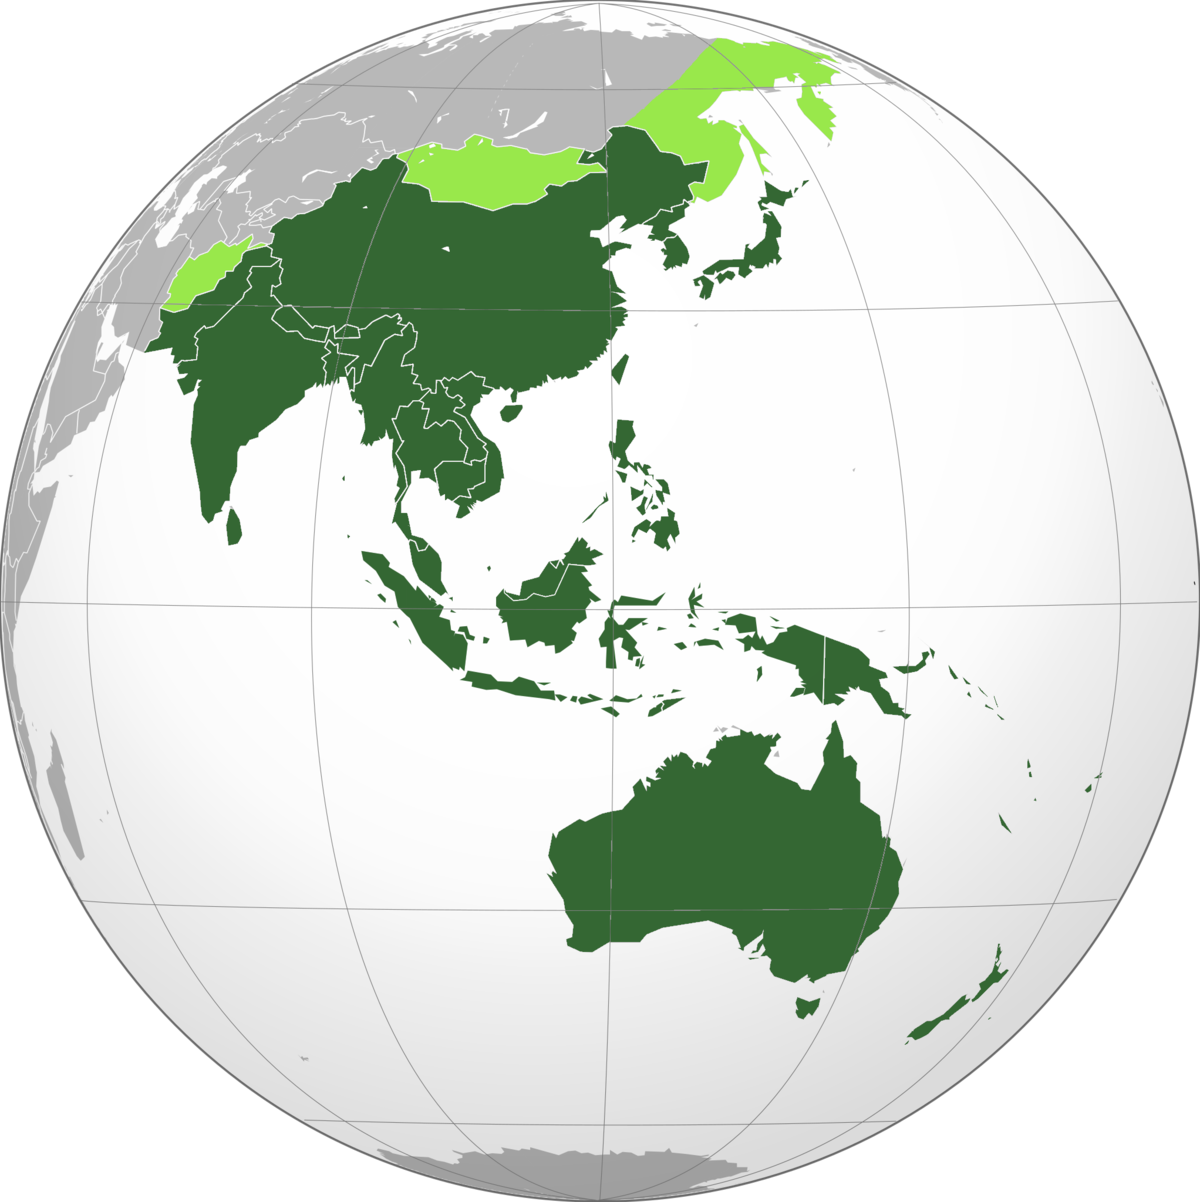 AsiaPacific Wikipedia - Asia pacific map with country names